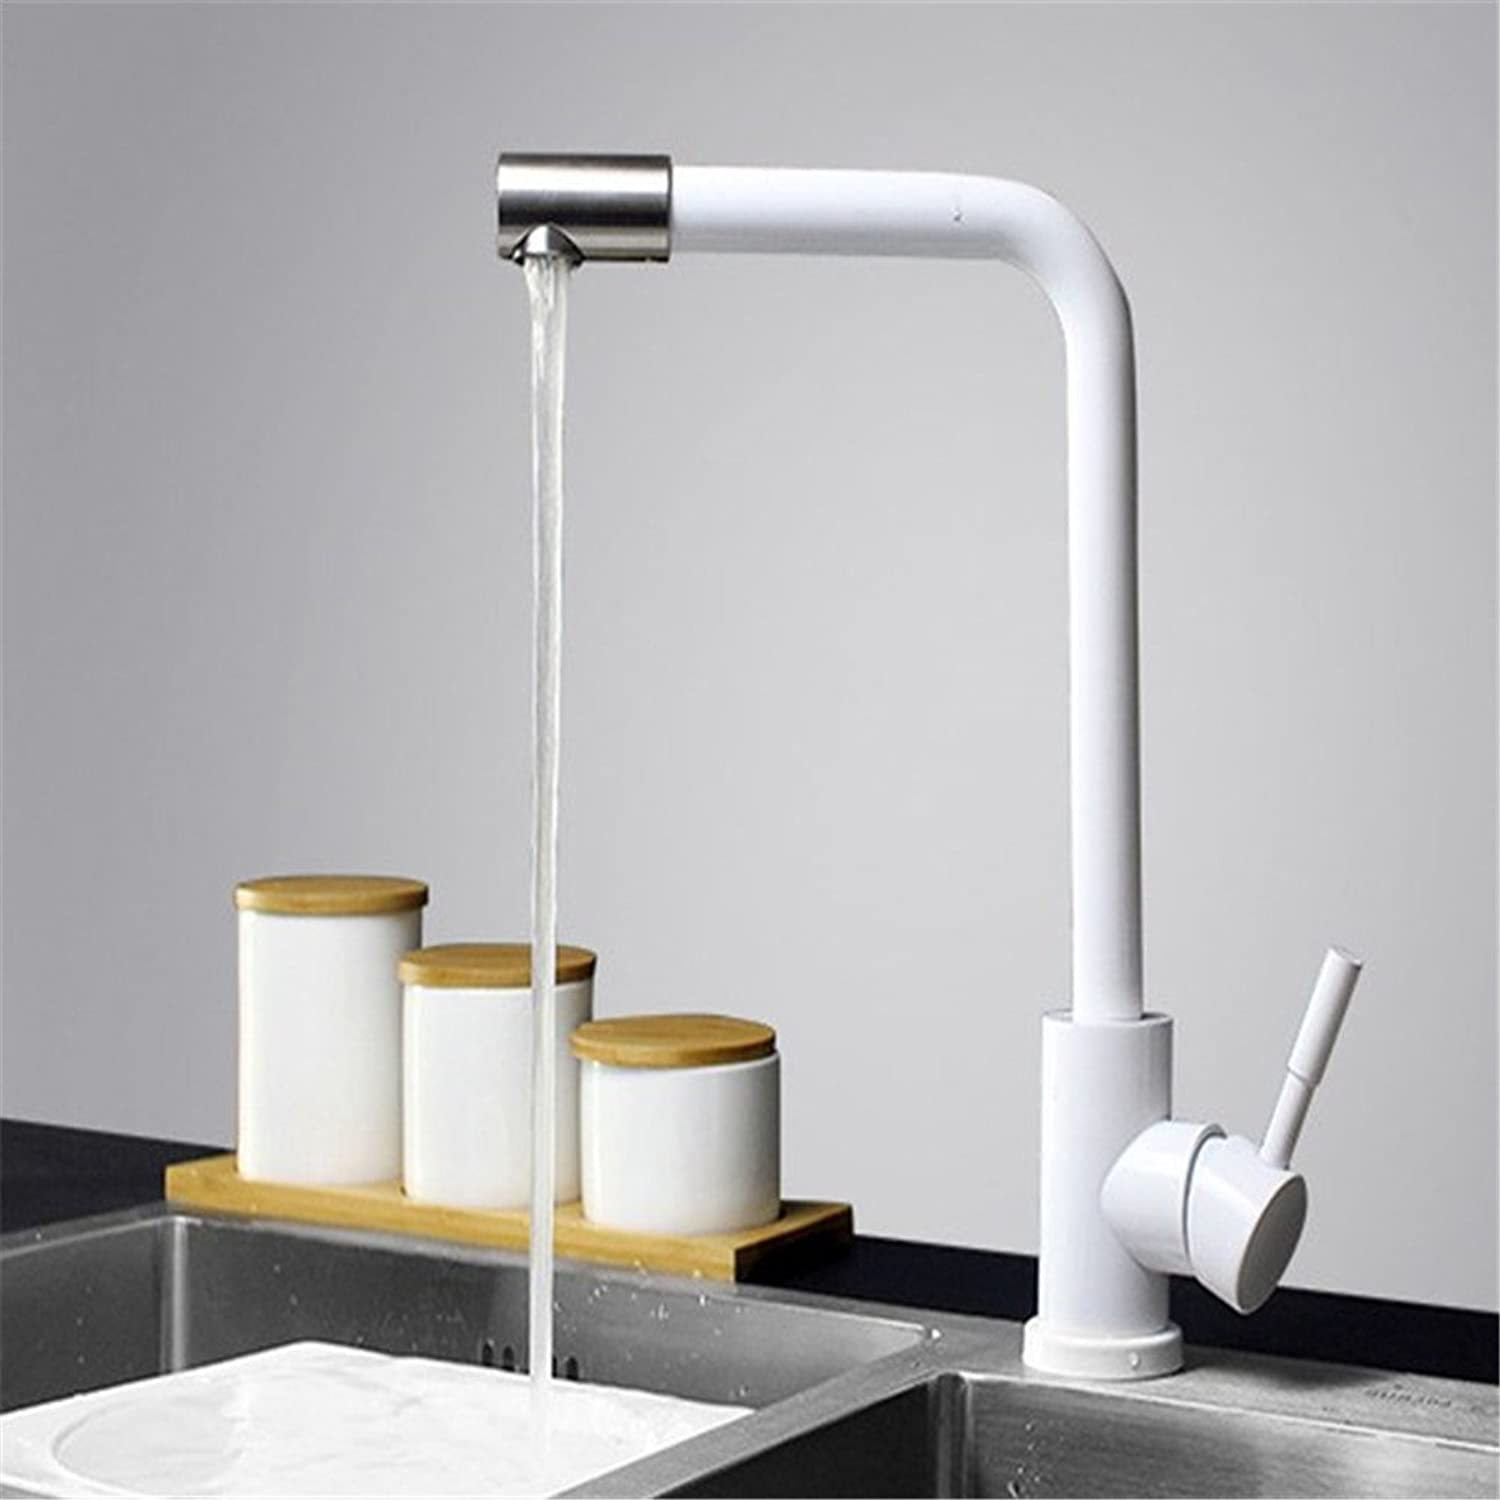 Hlluya Professional Sink Mixer Tap Kitchen Faucet Kitchen Faucet Enamel white switch stainless steel kitchen hot and cold dual control paint faucet swivel tube